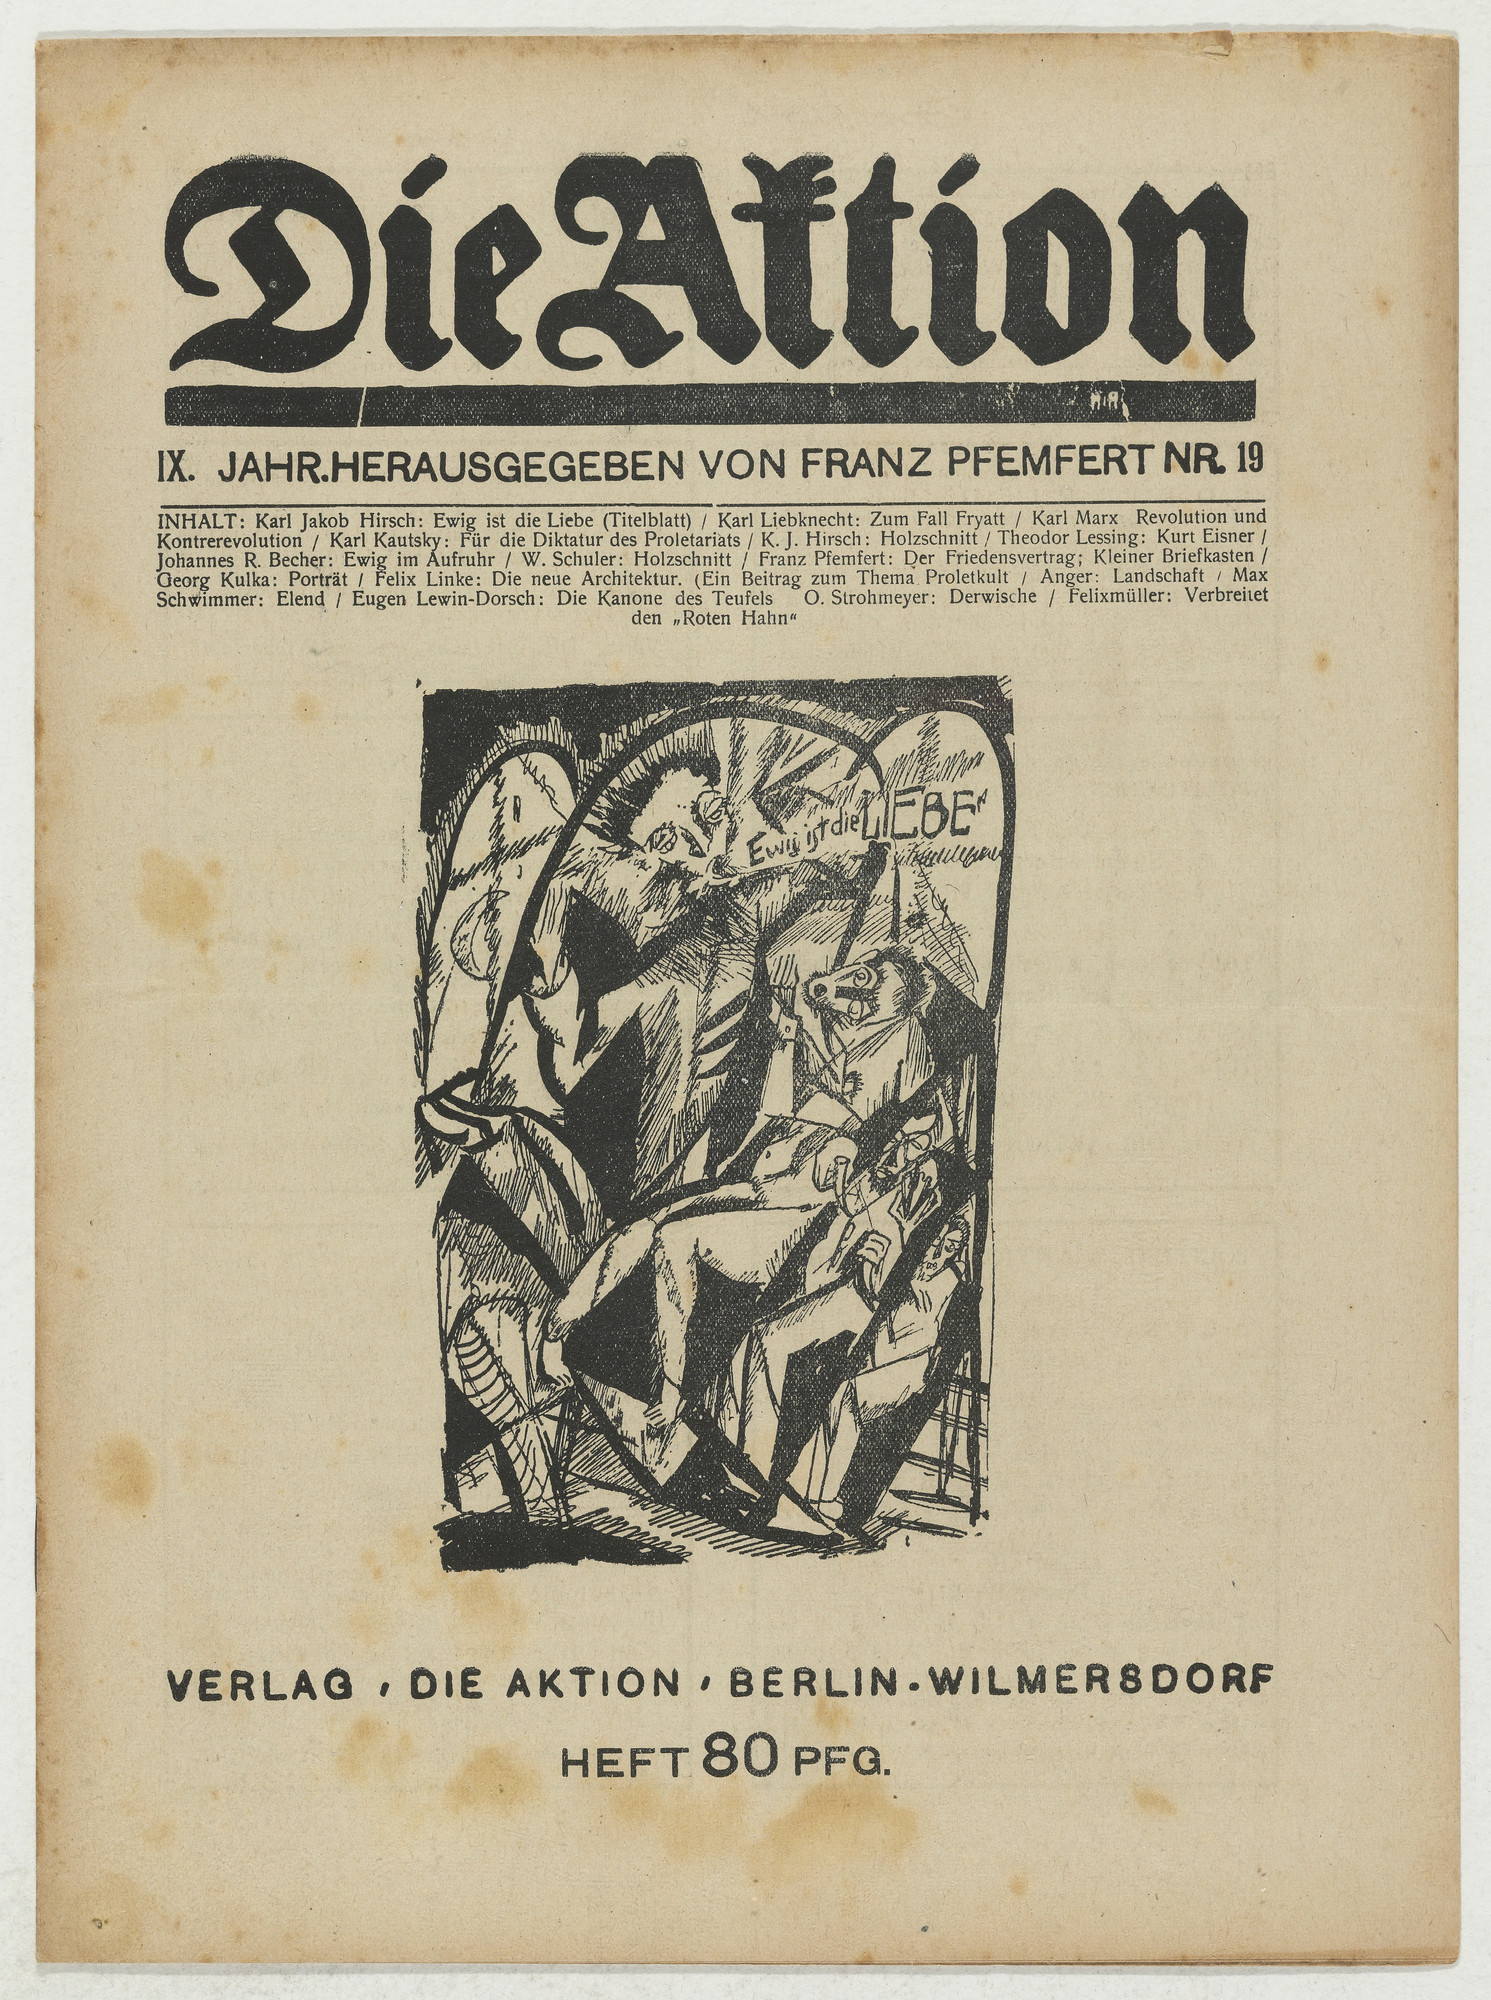 Karl Jacob Hirsch, Wilhelm Schuler, E. Anger, Conrad Felixmüller. Die Aktion, vol. 9, no. 19. May 17, 1919